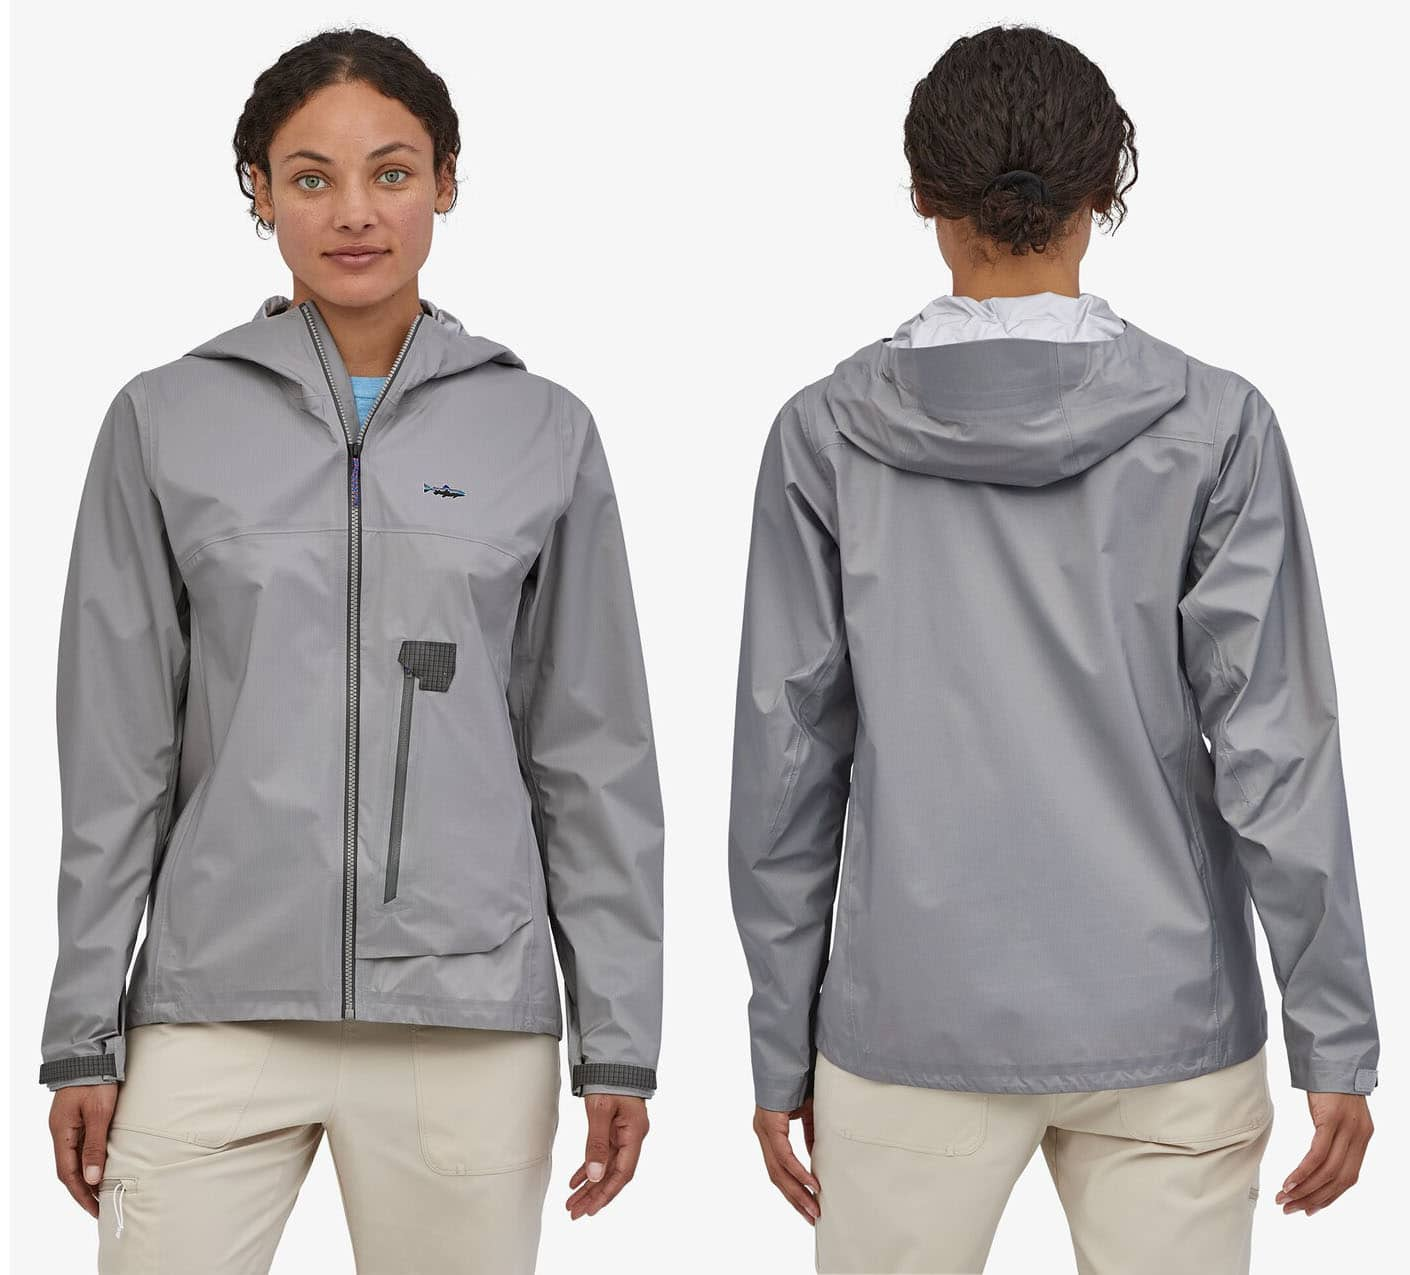 This minimalist go-everywhere jacket is breathable and waterproof to keep you dry and comfy